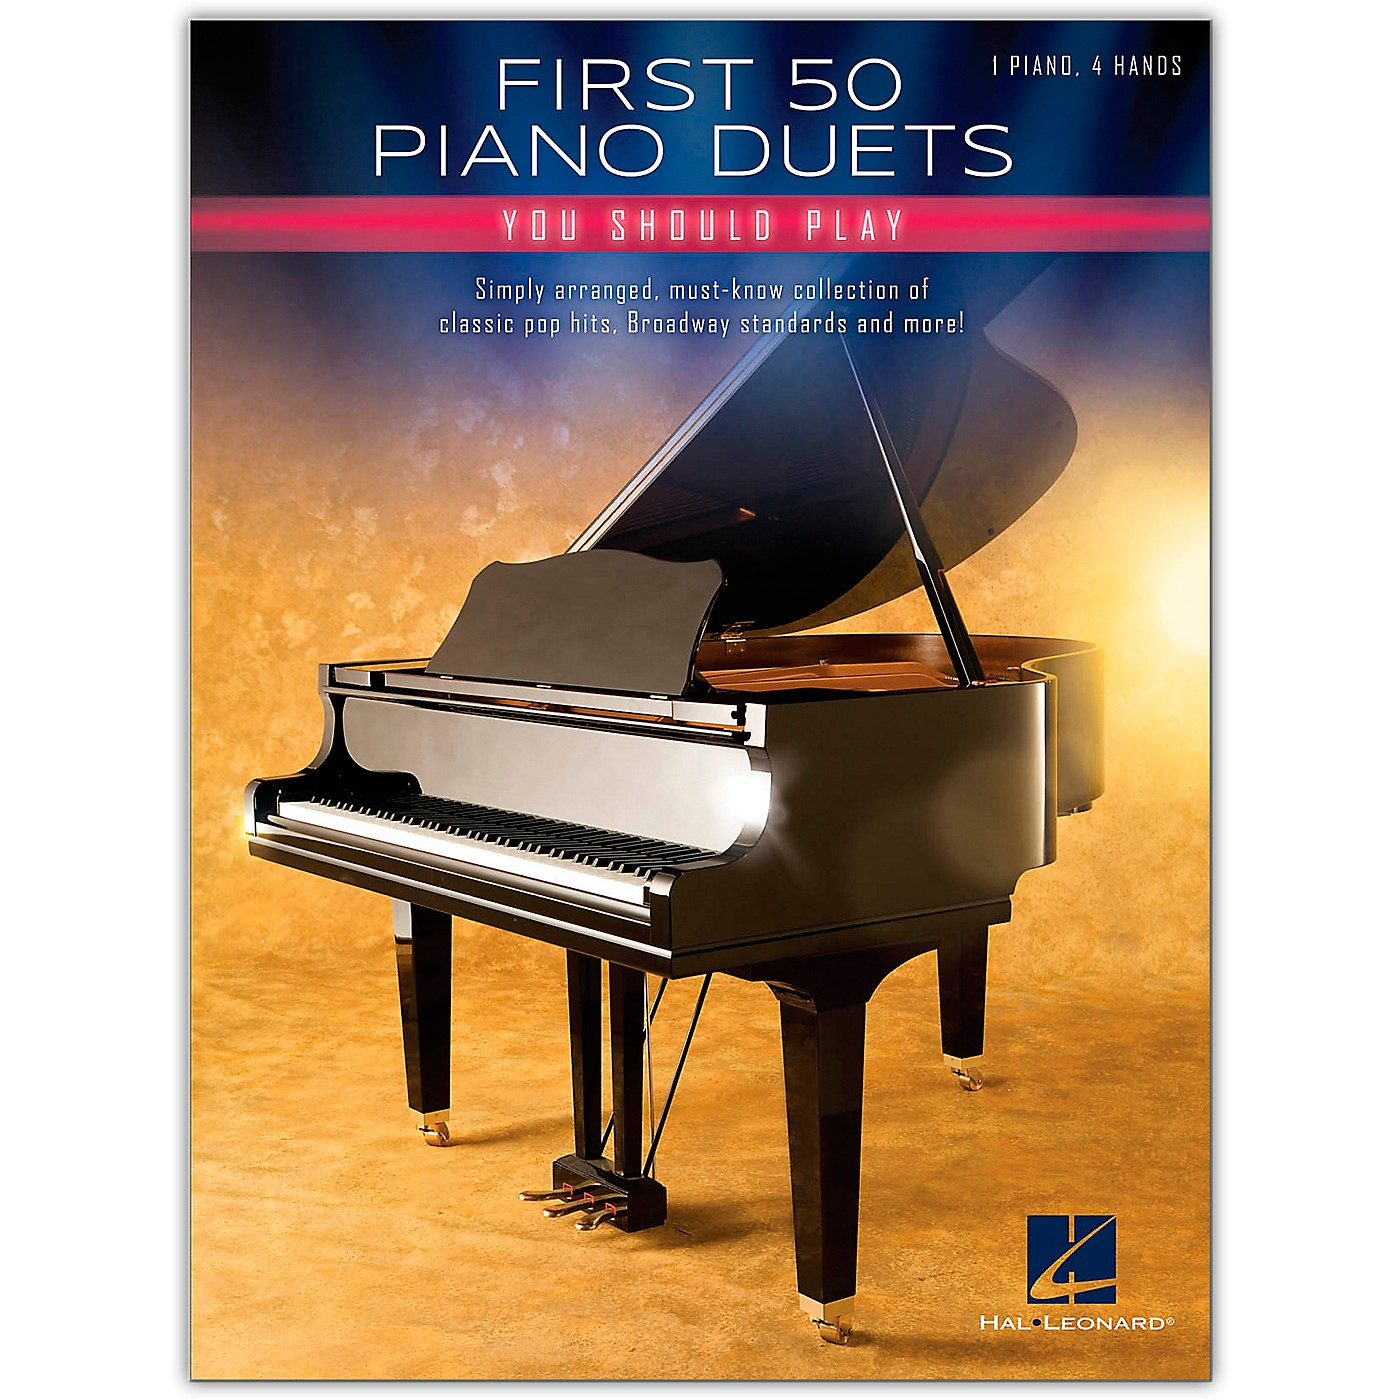 Hal Leonard First 50 Piano Duets You Should Play - Piano Duet Songbook thumbnail